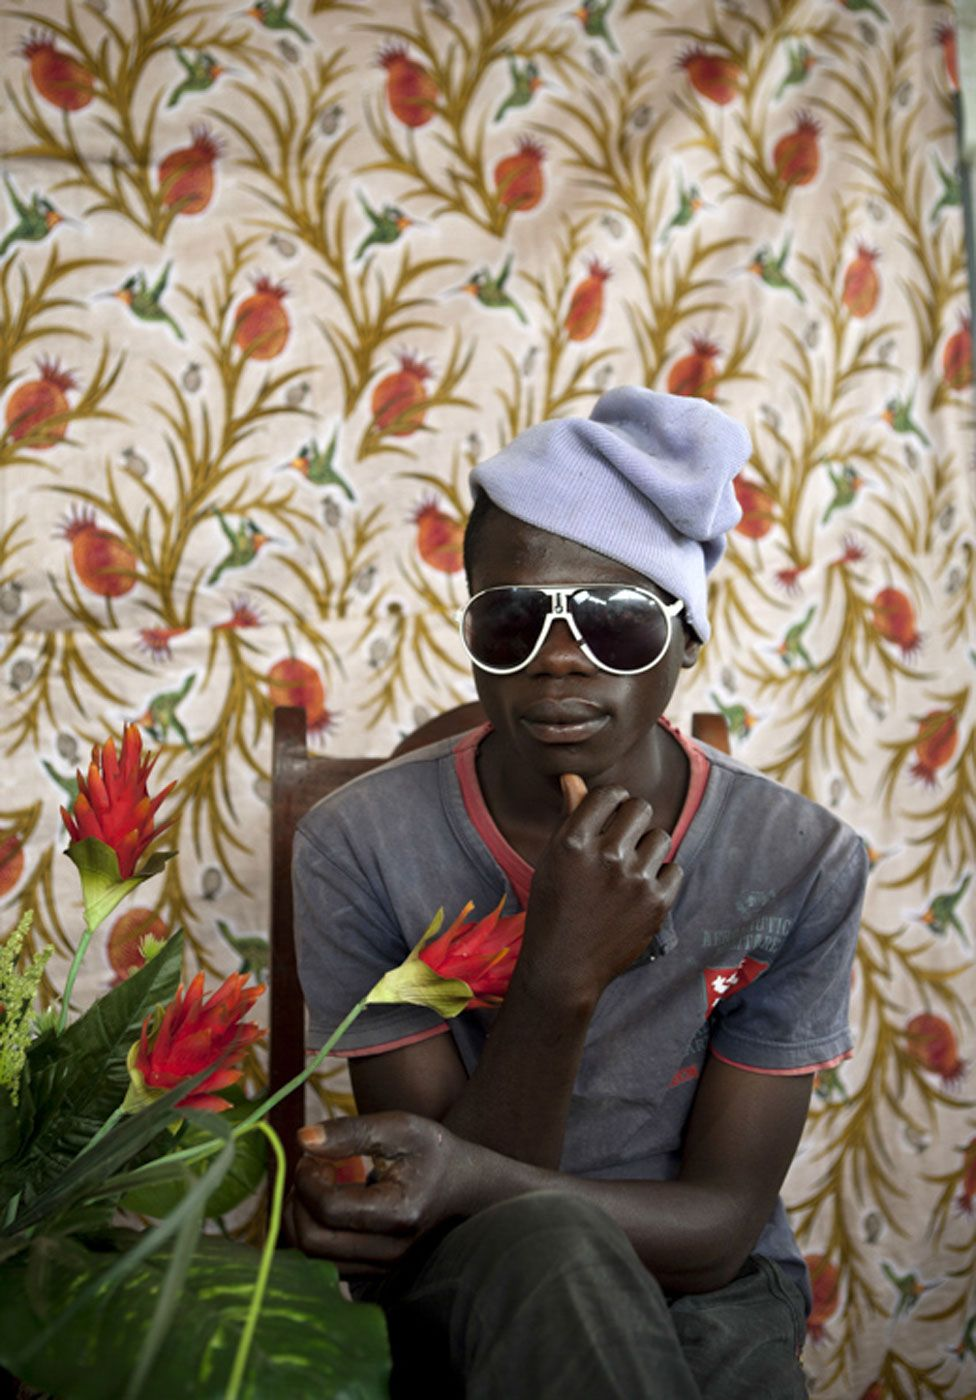 Boy in a beanie and sunglasses poses with flowers